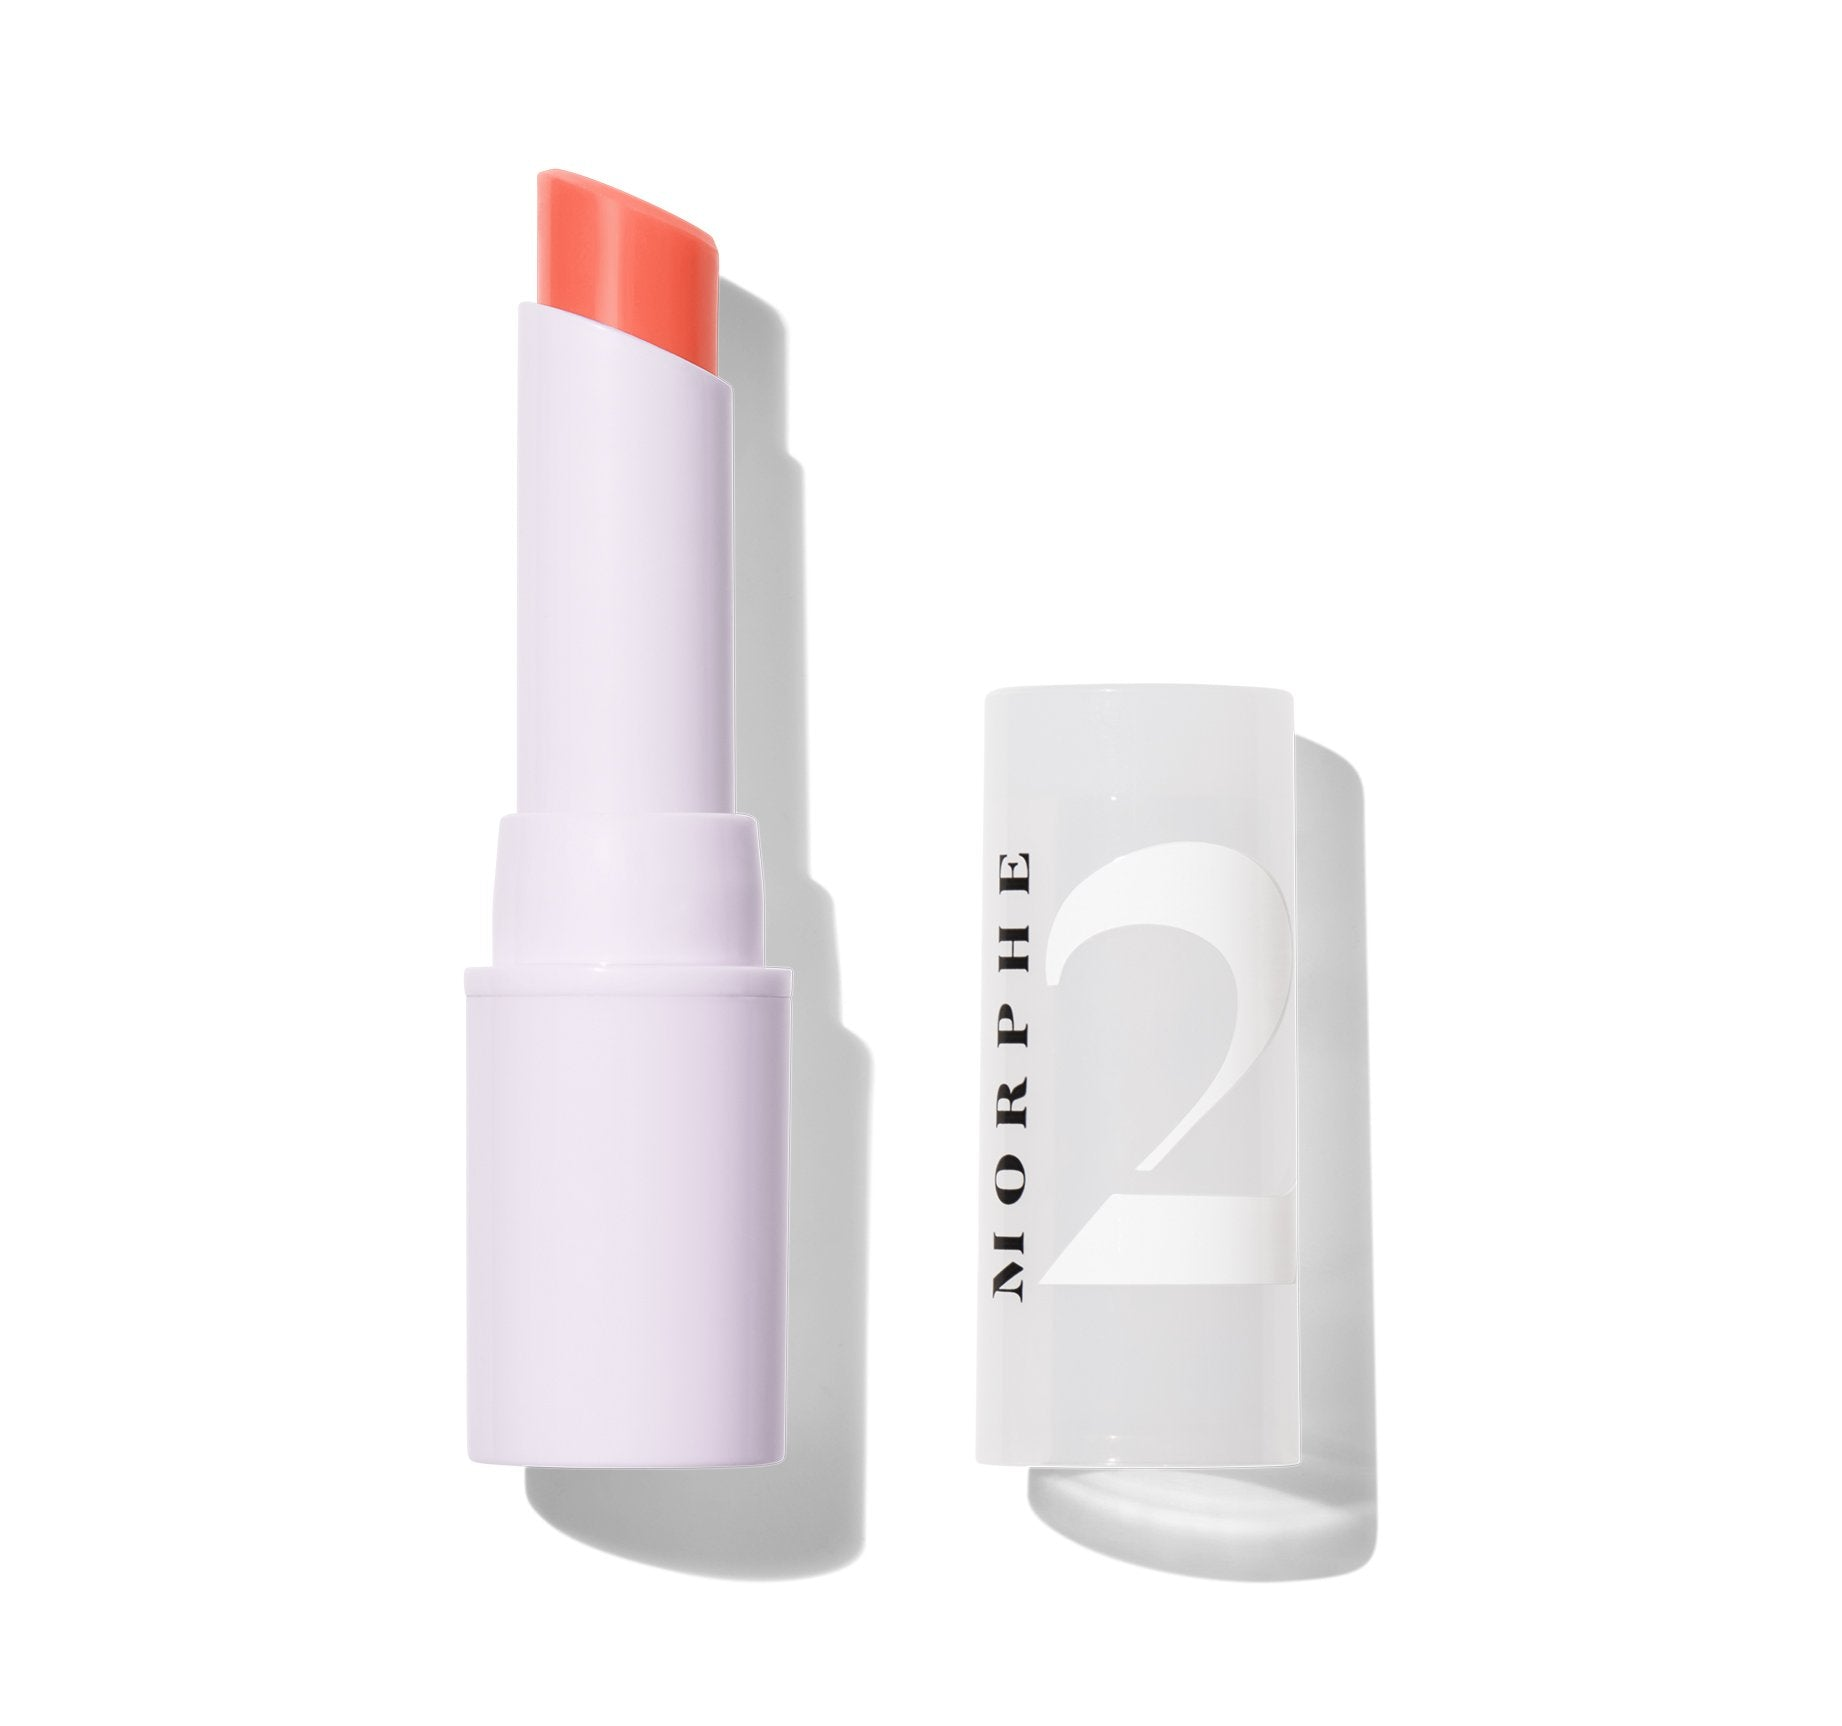 L-BALM LIP BALM - CORAL KISSES, view larger image